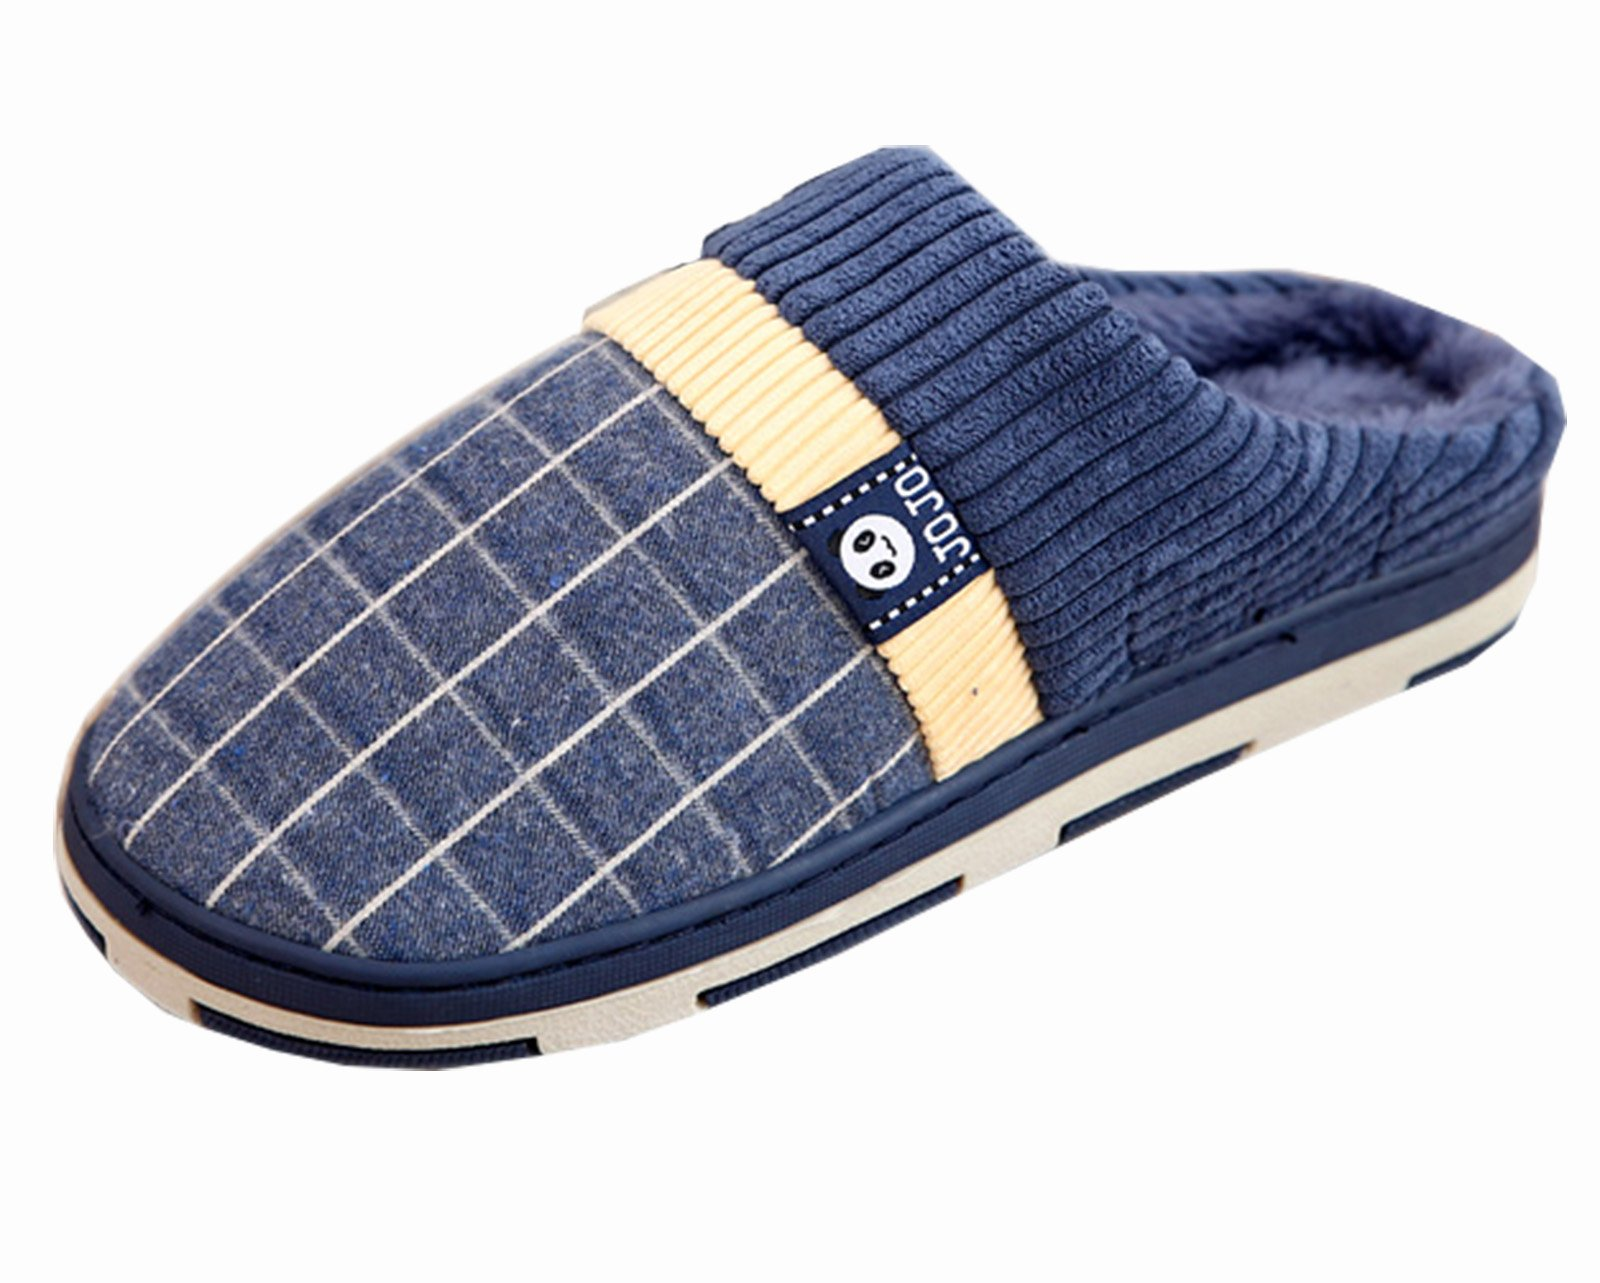 HFT Men's Square Imitation Ox-tendon Sole Indoor Home Shoes Winter Slippers Cotton Slippers